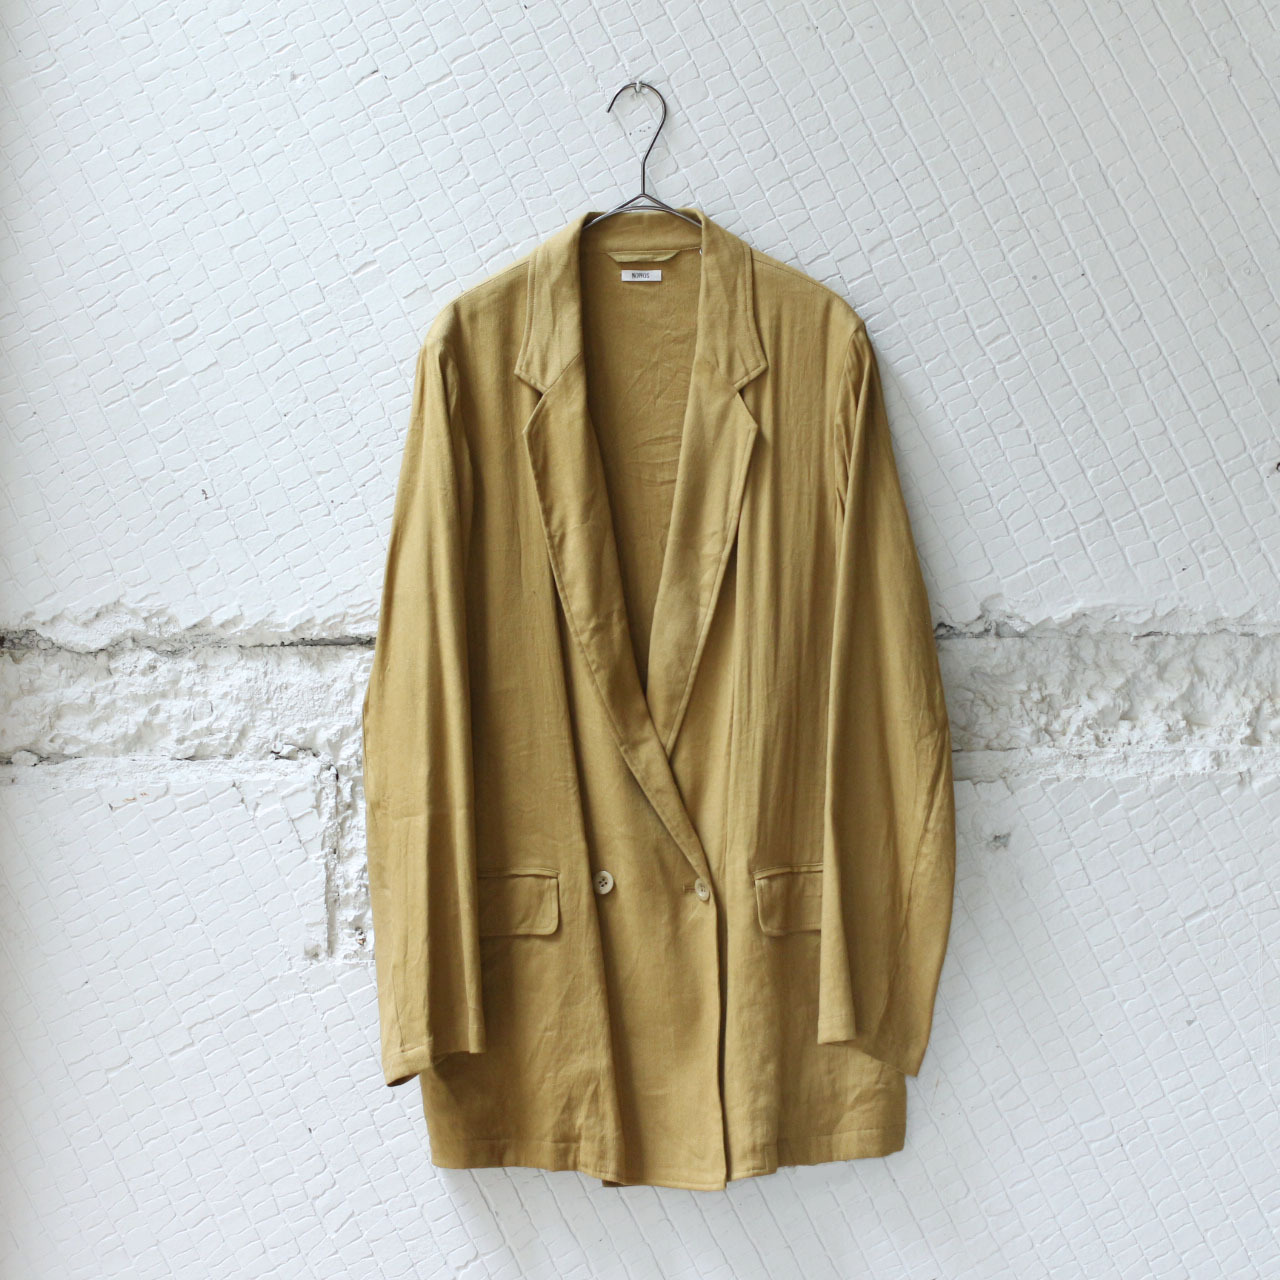 【nowos】 TWILL JACKET